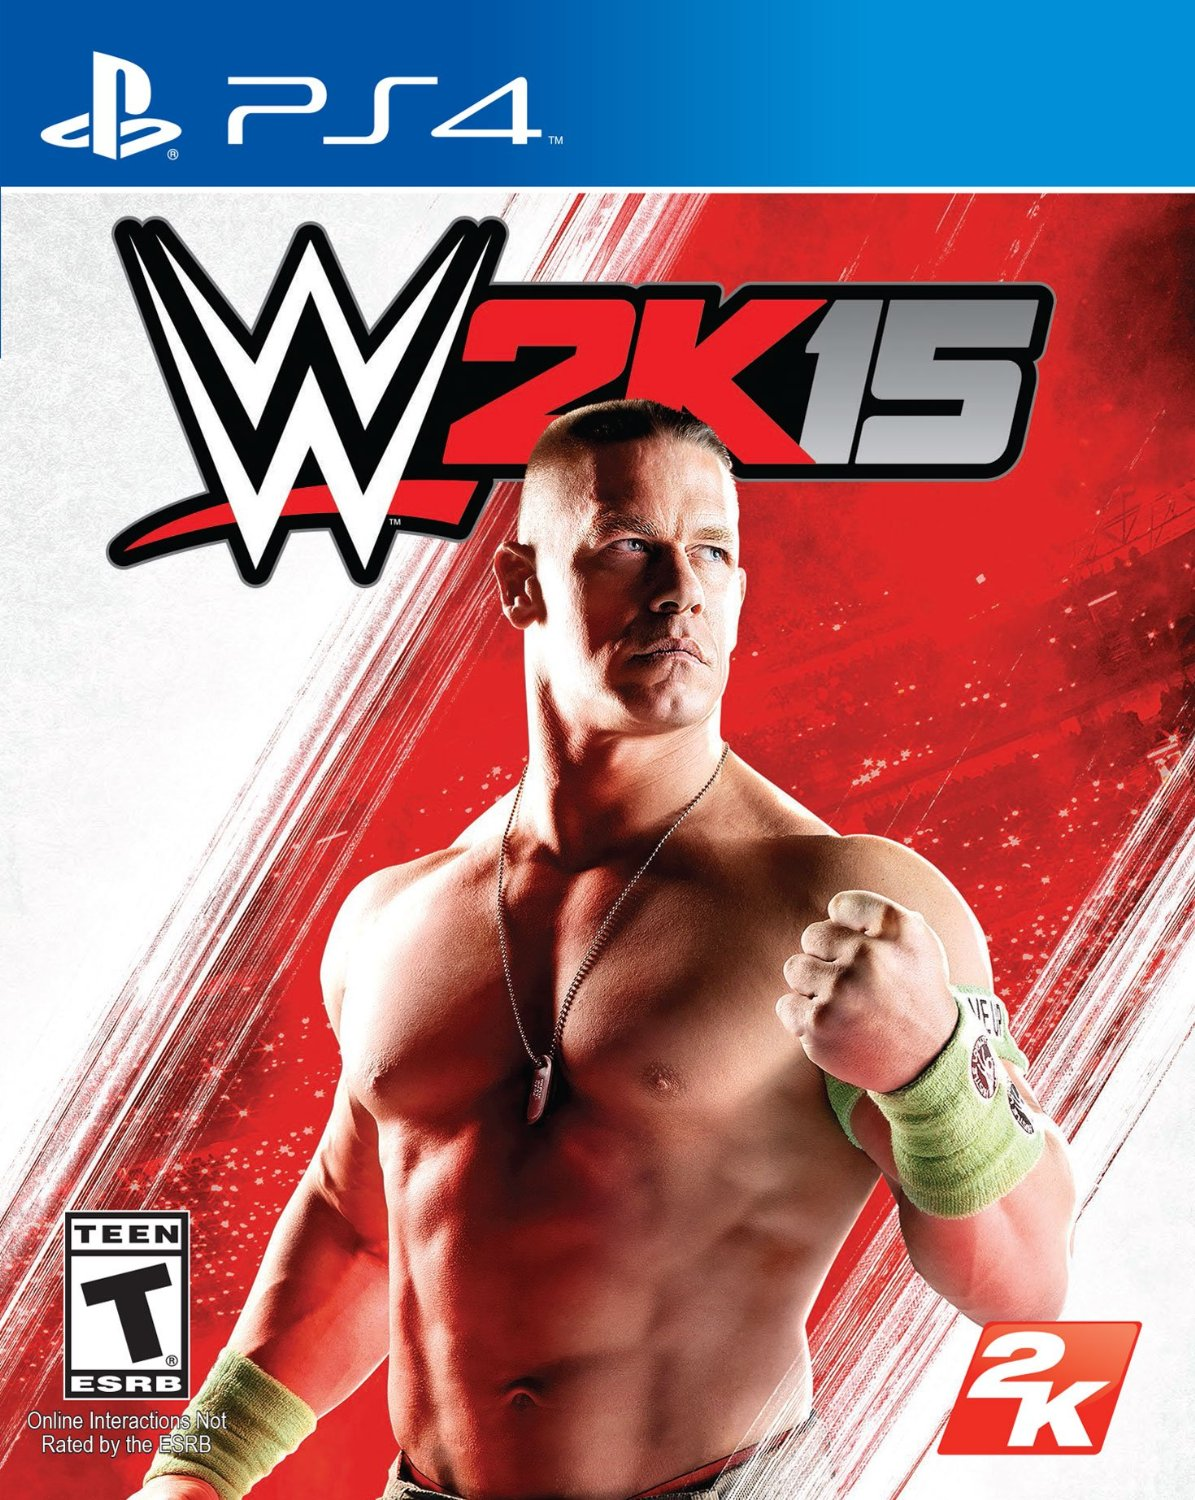 WWE 2K15 PS4 Cover Art